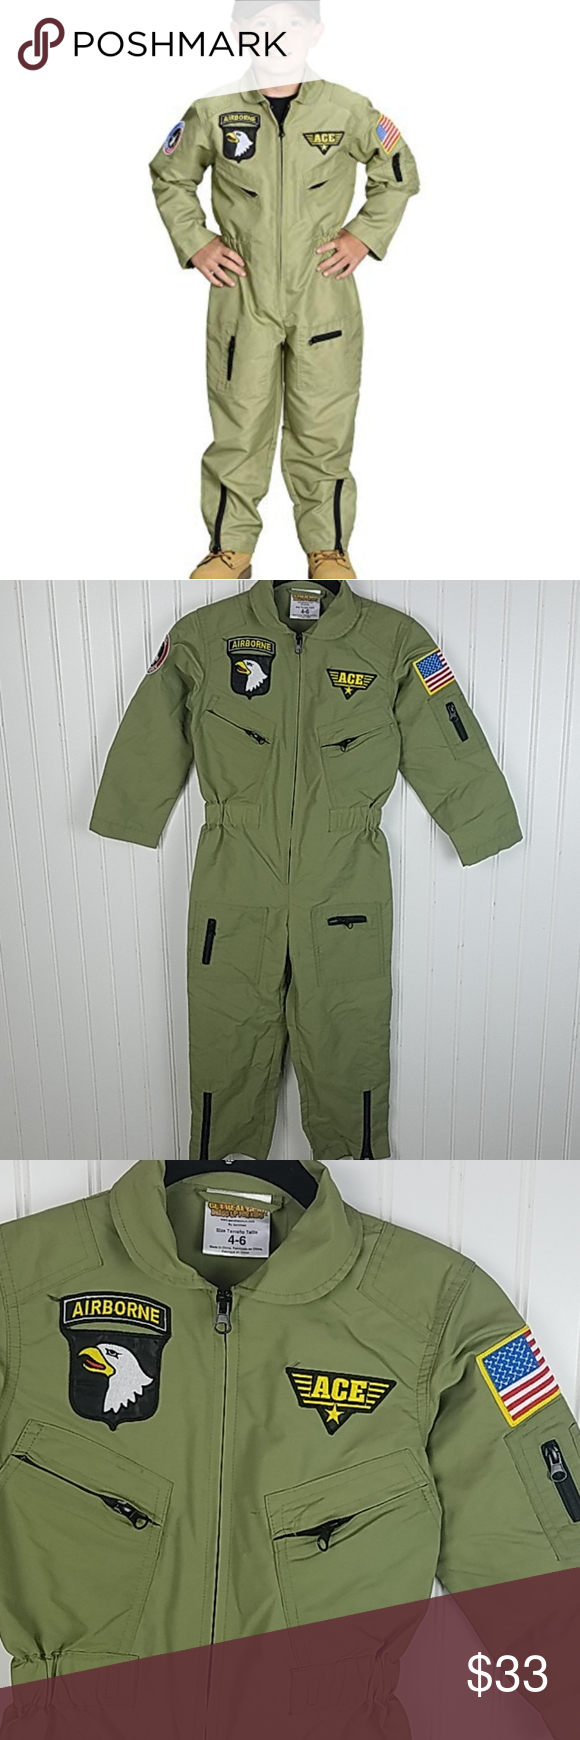 SOLD ON EBAY Get Real Gear Air Force Suit Kids 46 in 2020